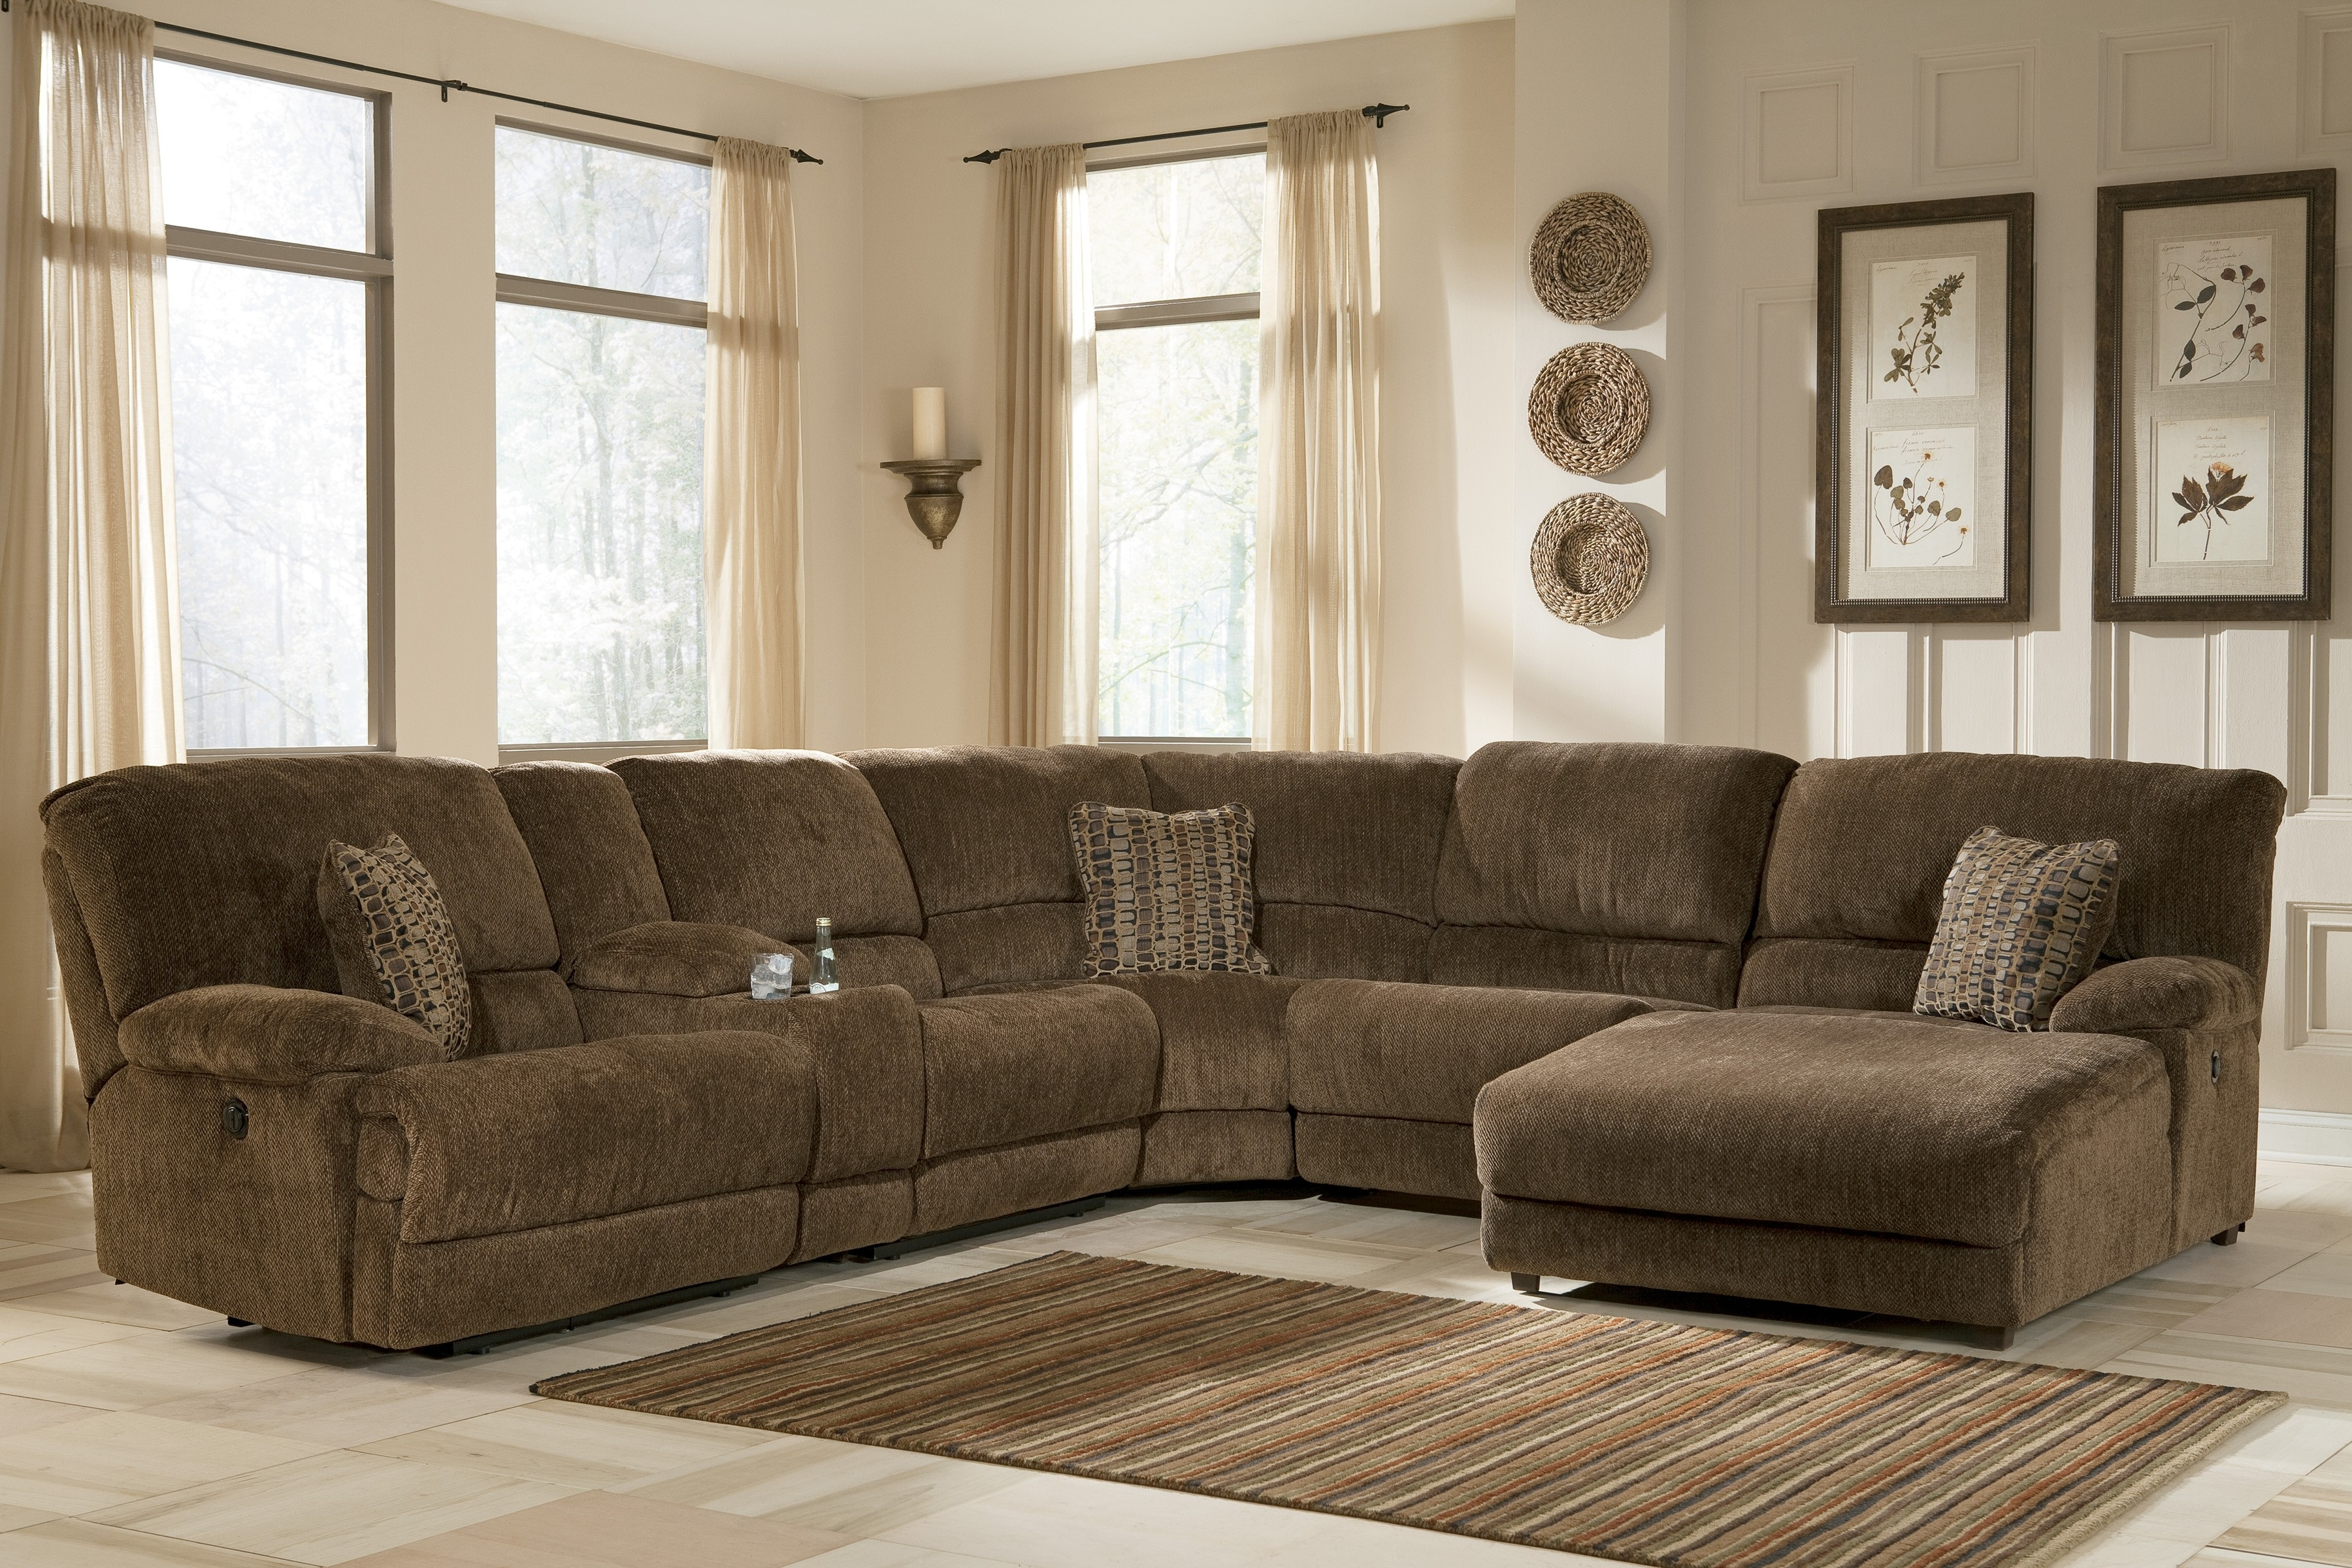 Widely Used Small Sectionals For Apartments Apartment Size Sectional Sofa With With Regard To Sectional Couches With Recliner And Chaise (View 15 of 15)